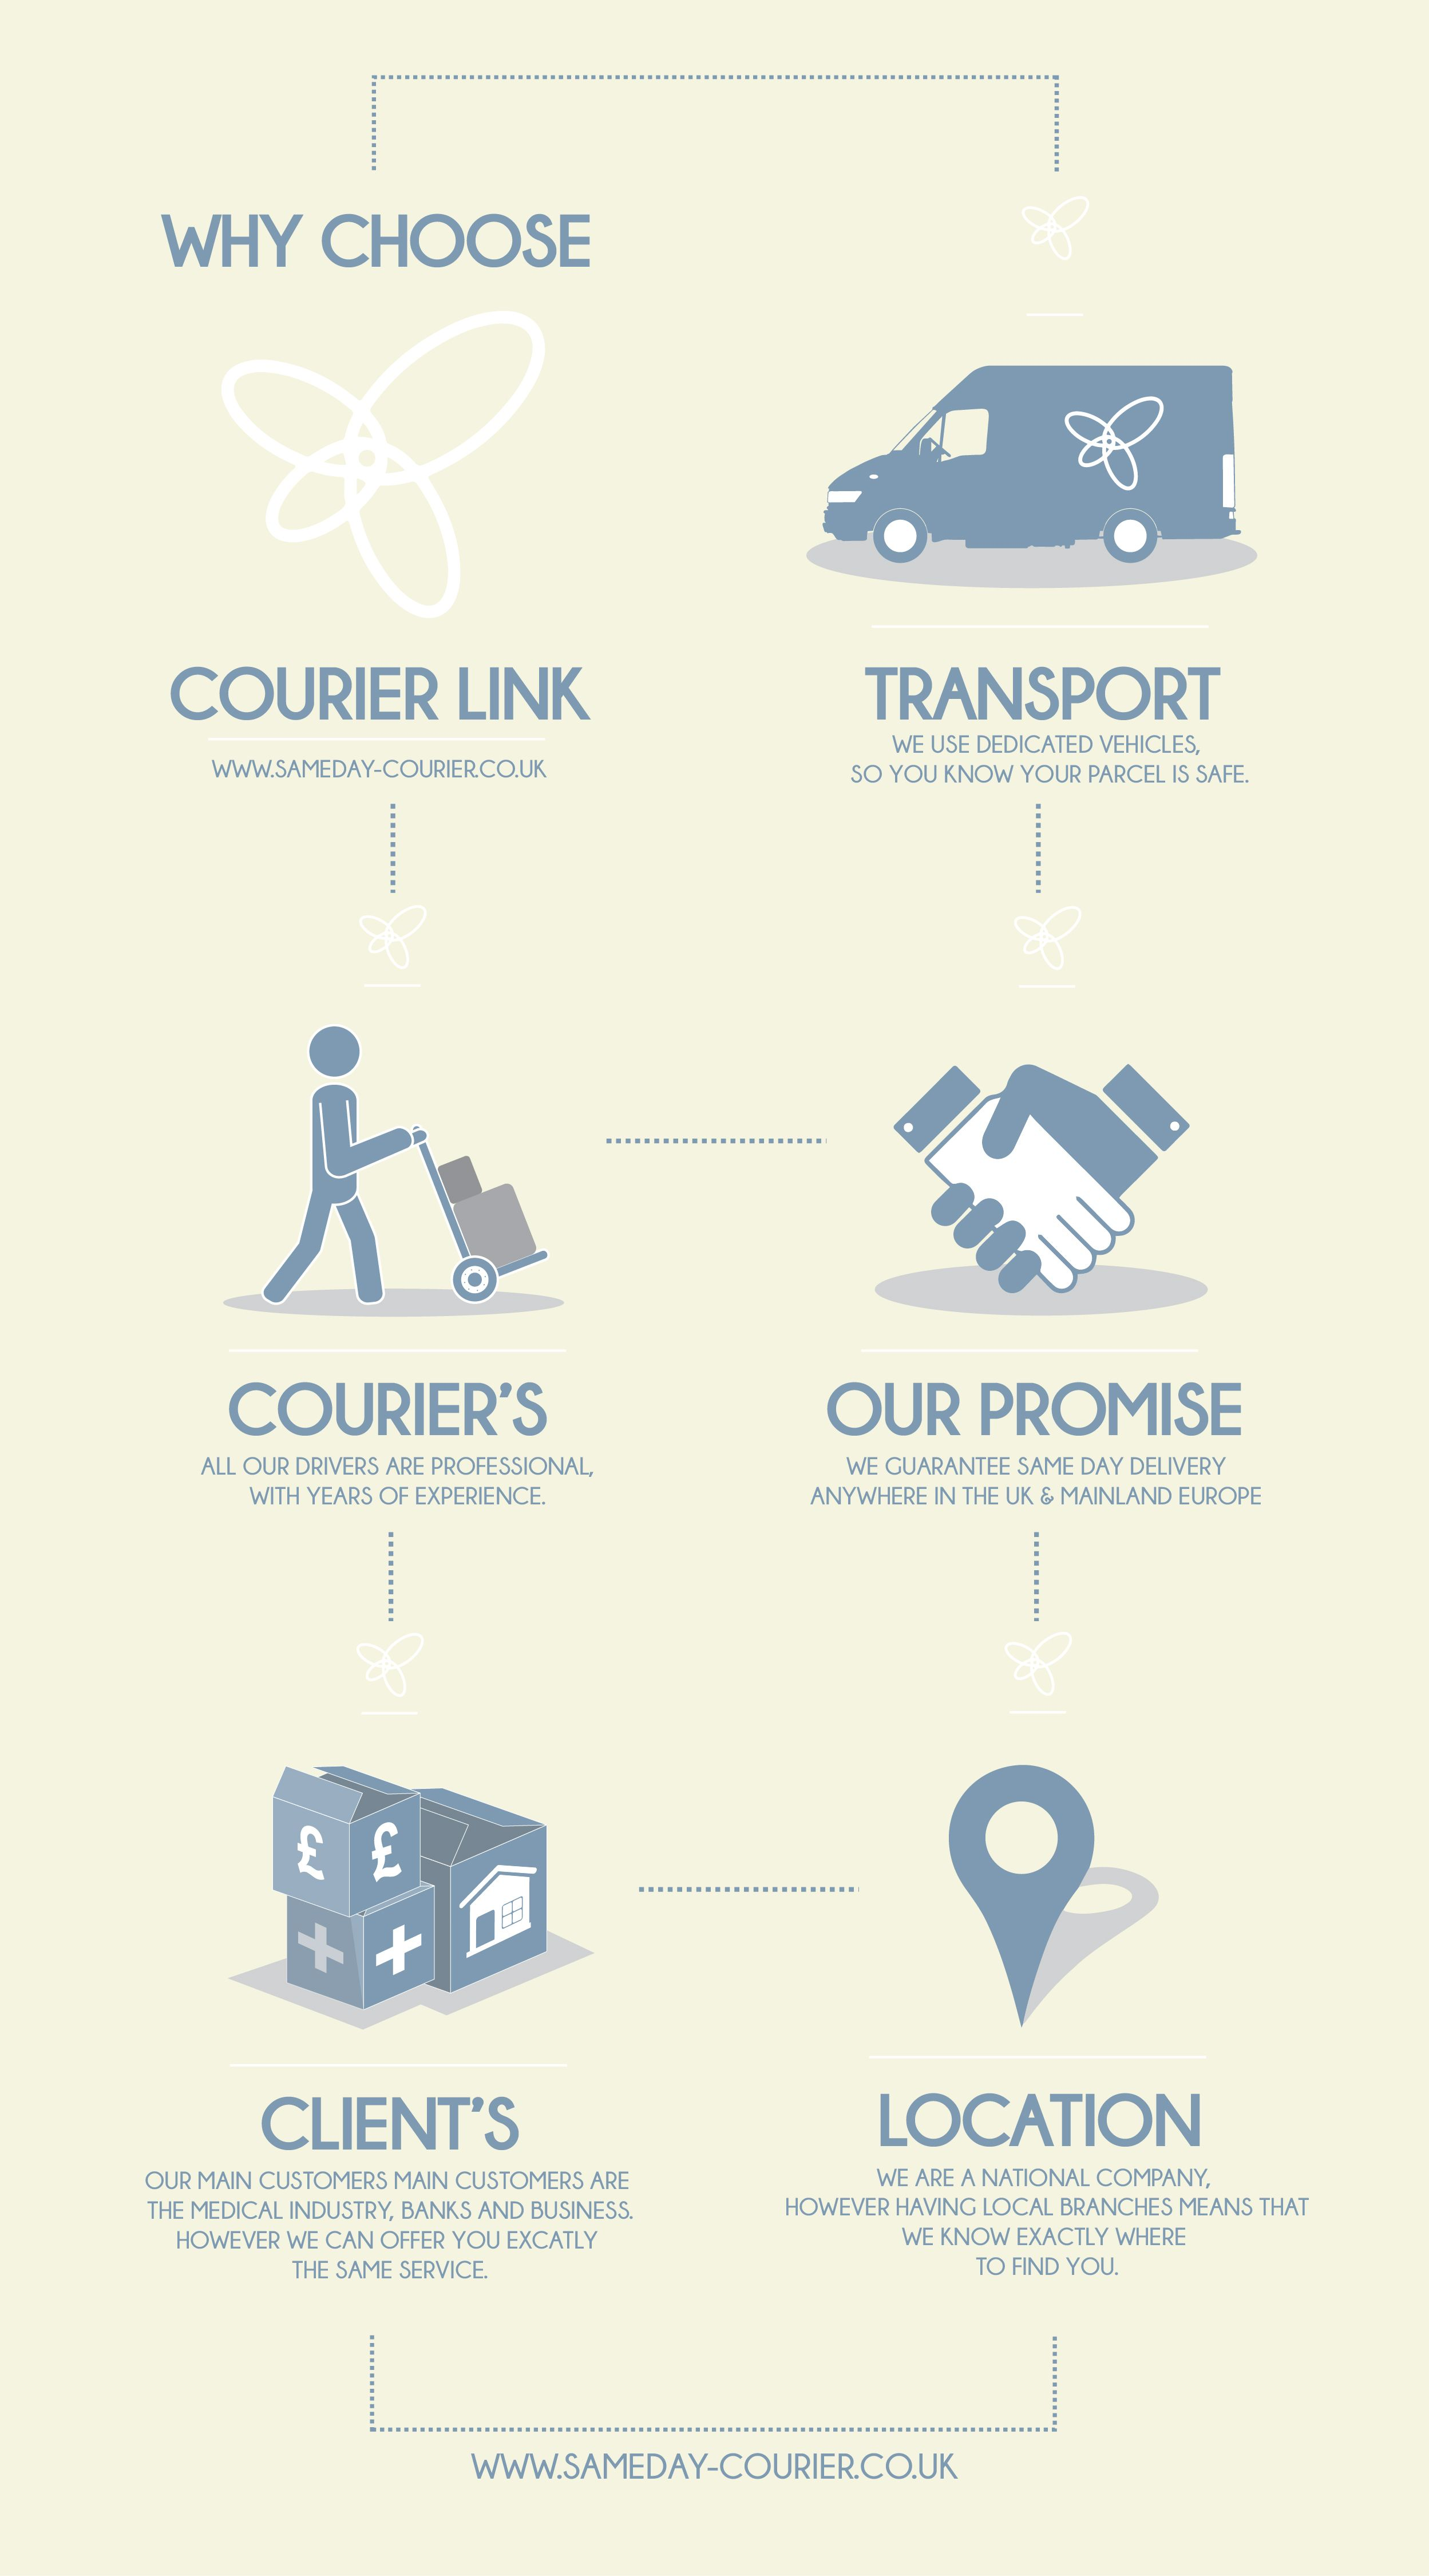 Courier Link Why Choose A Courier Infographic Infographic Courier Medical